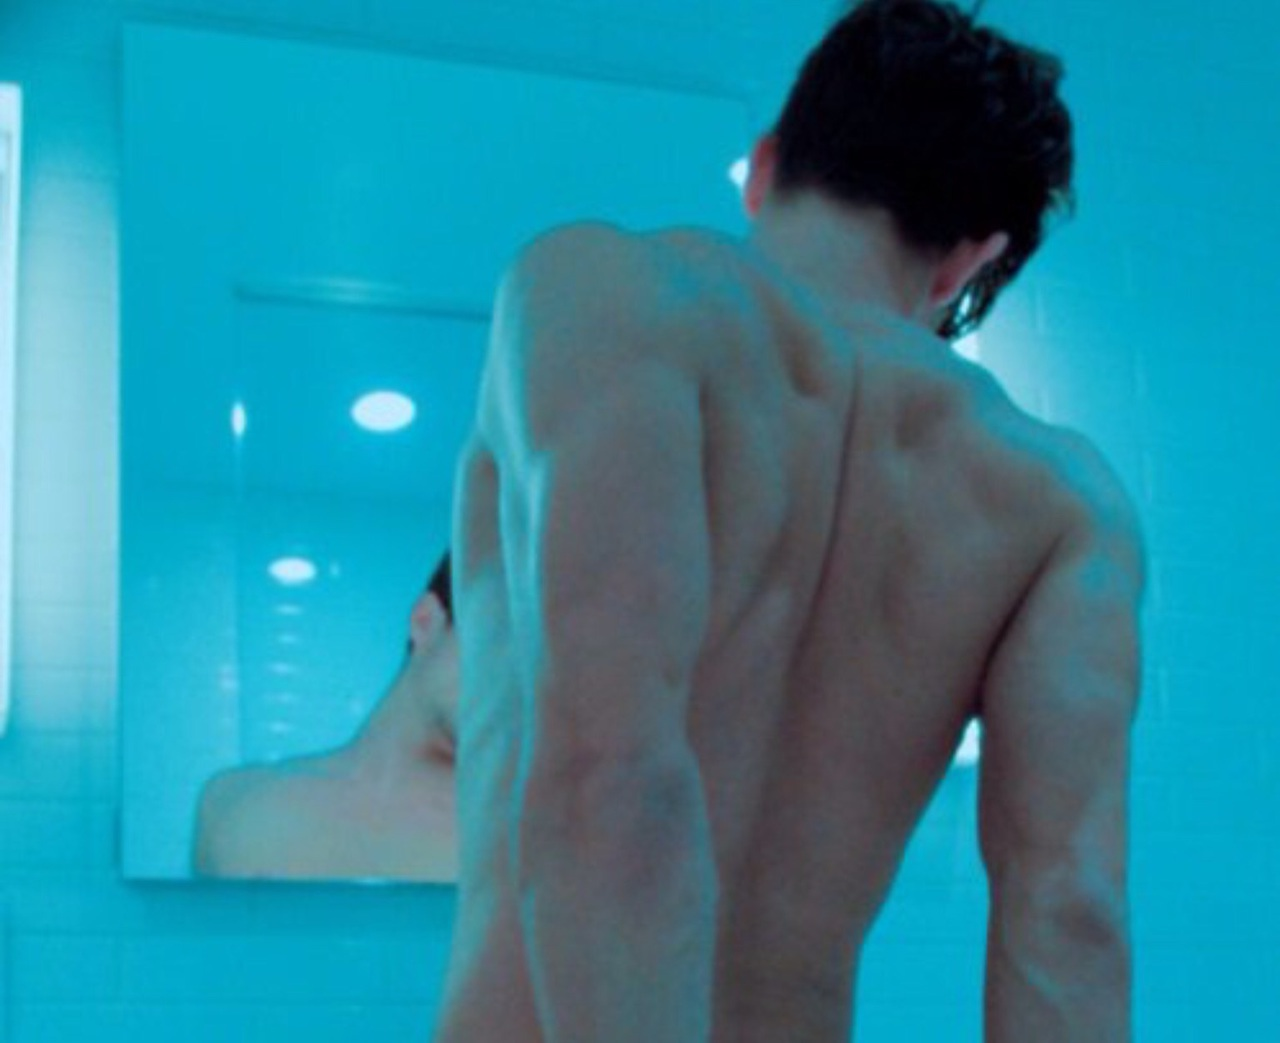 aesthetic, aqua, back, blue, body